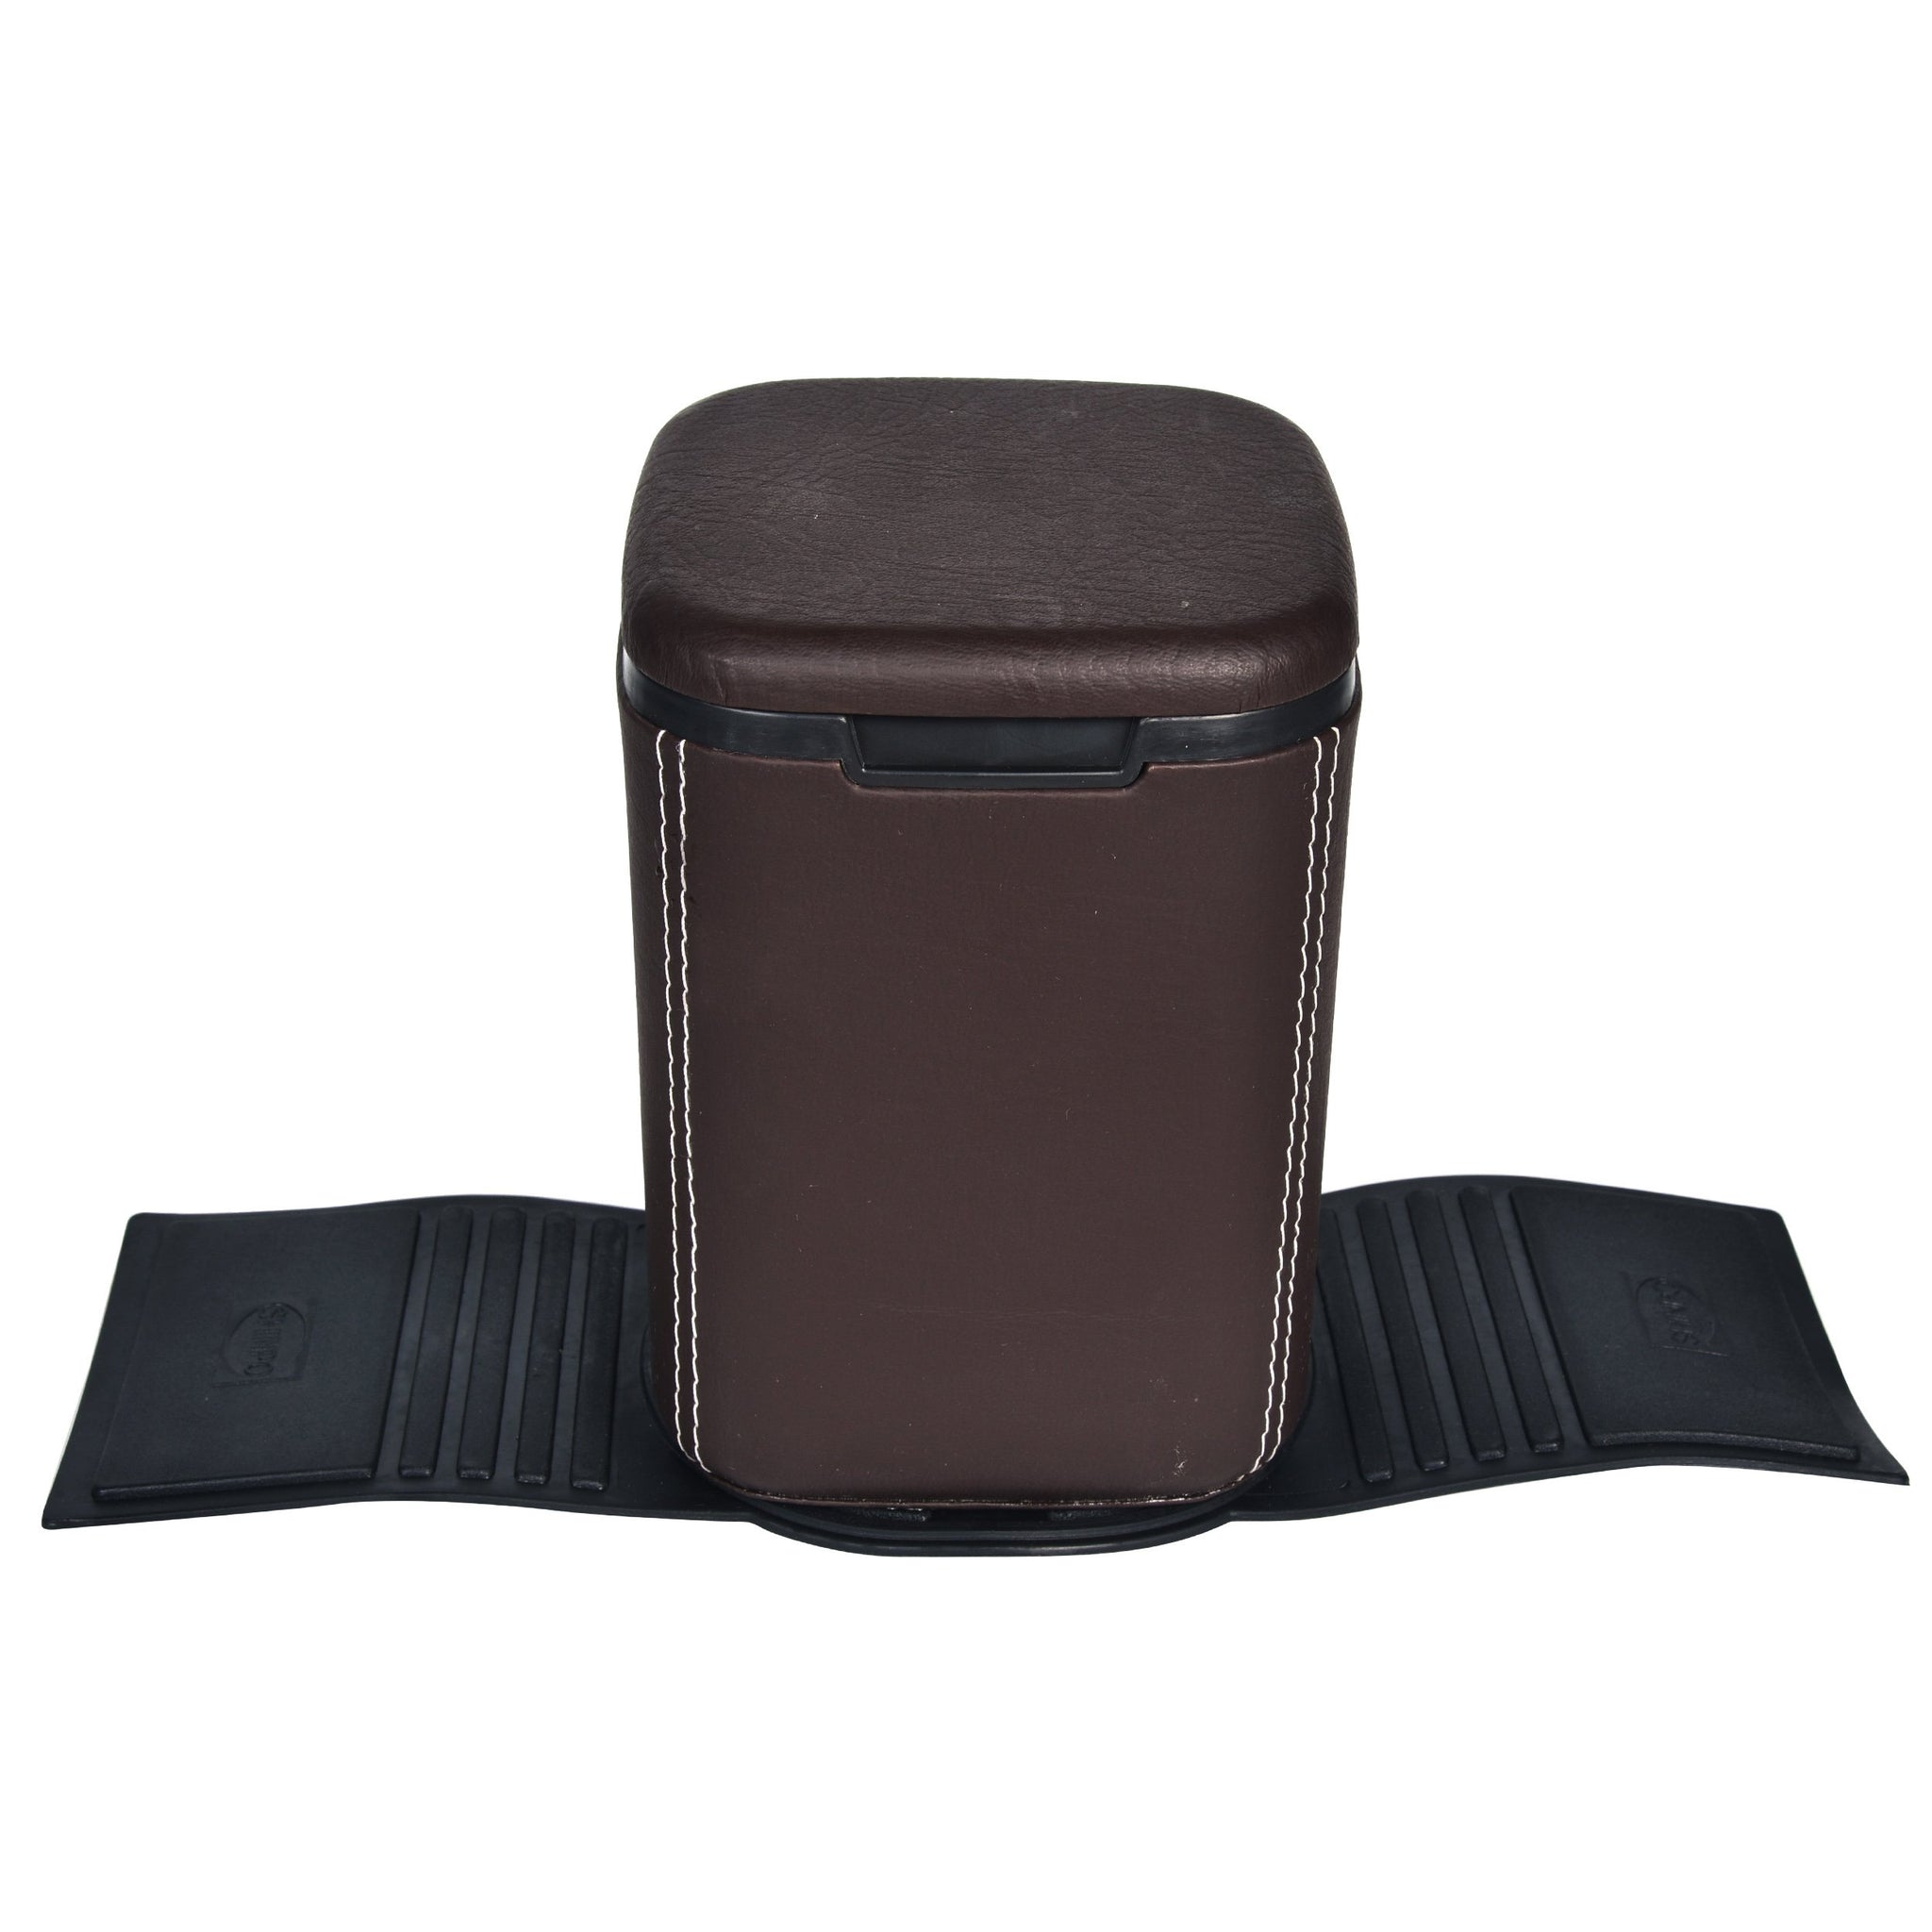 Nestasia Mini Car Dustbin with lid - brown PU Leatherite - waste paper storage box - rubber base for stability